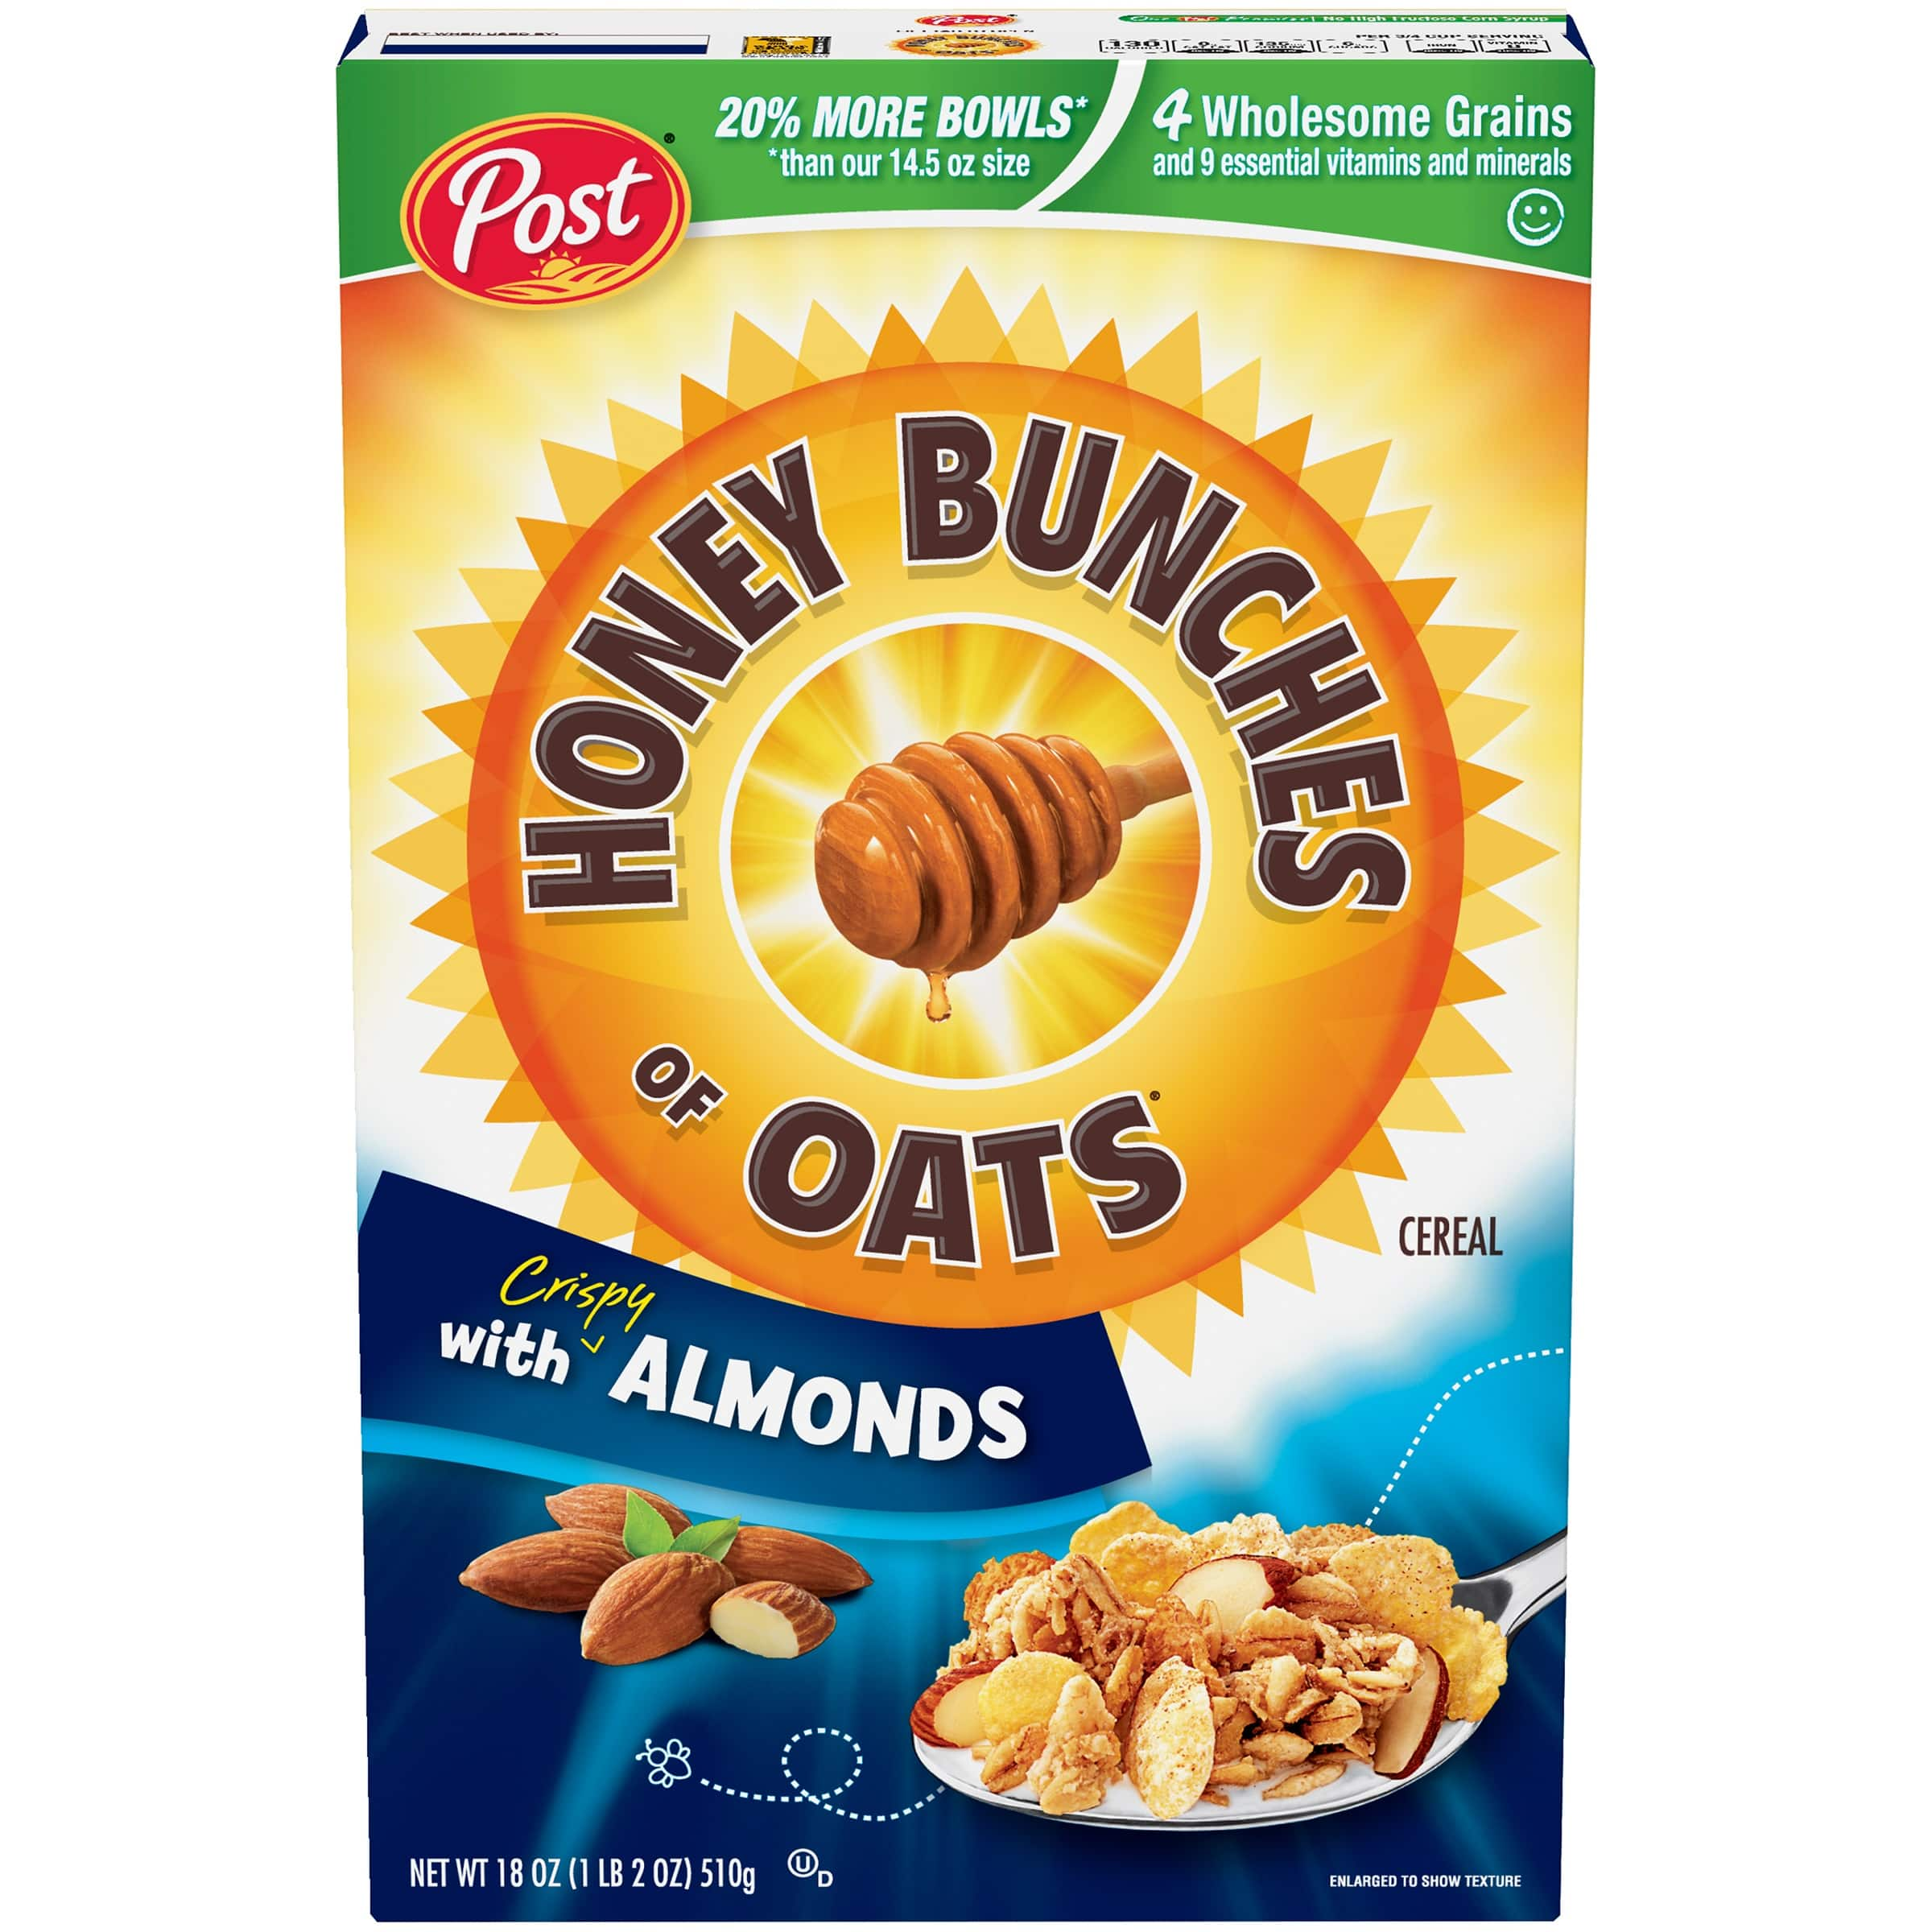 Post Honey Bunches of Oats with Crispy Almonds Cereal 18 oz. Box $2.36 with s/s